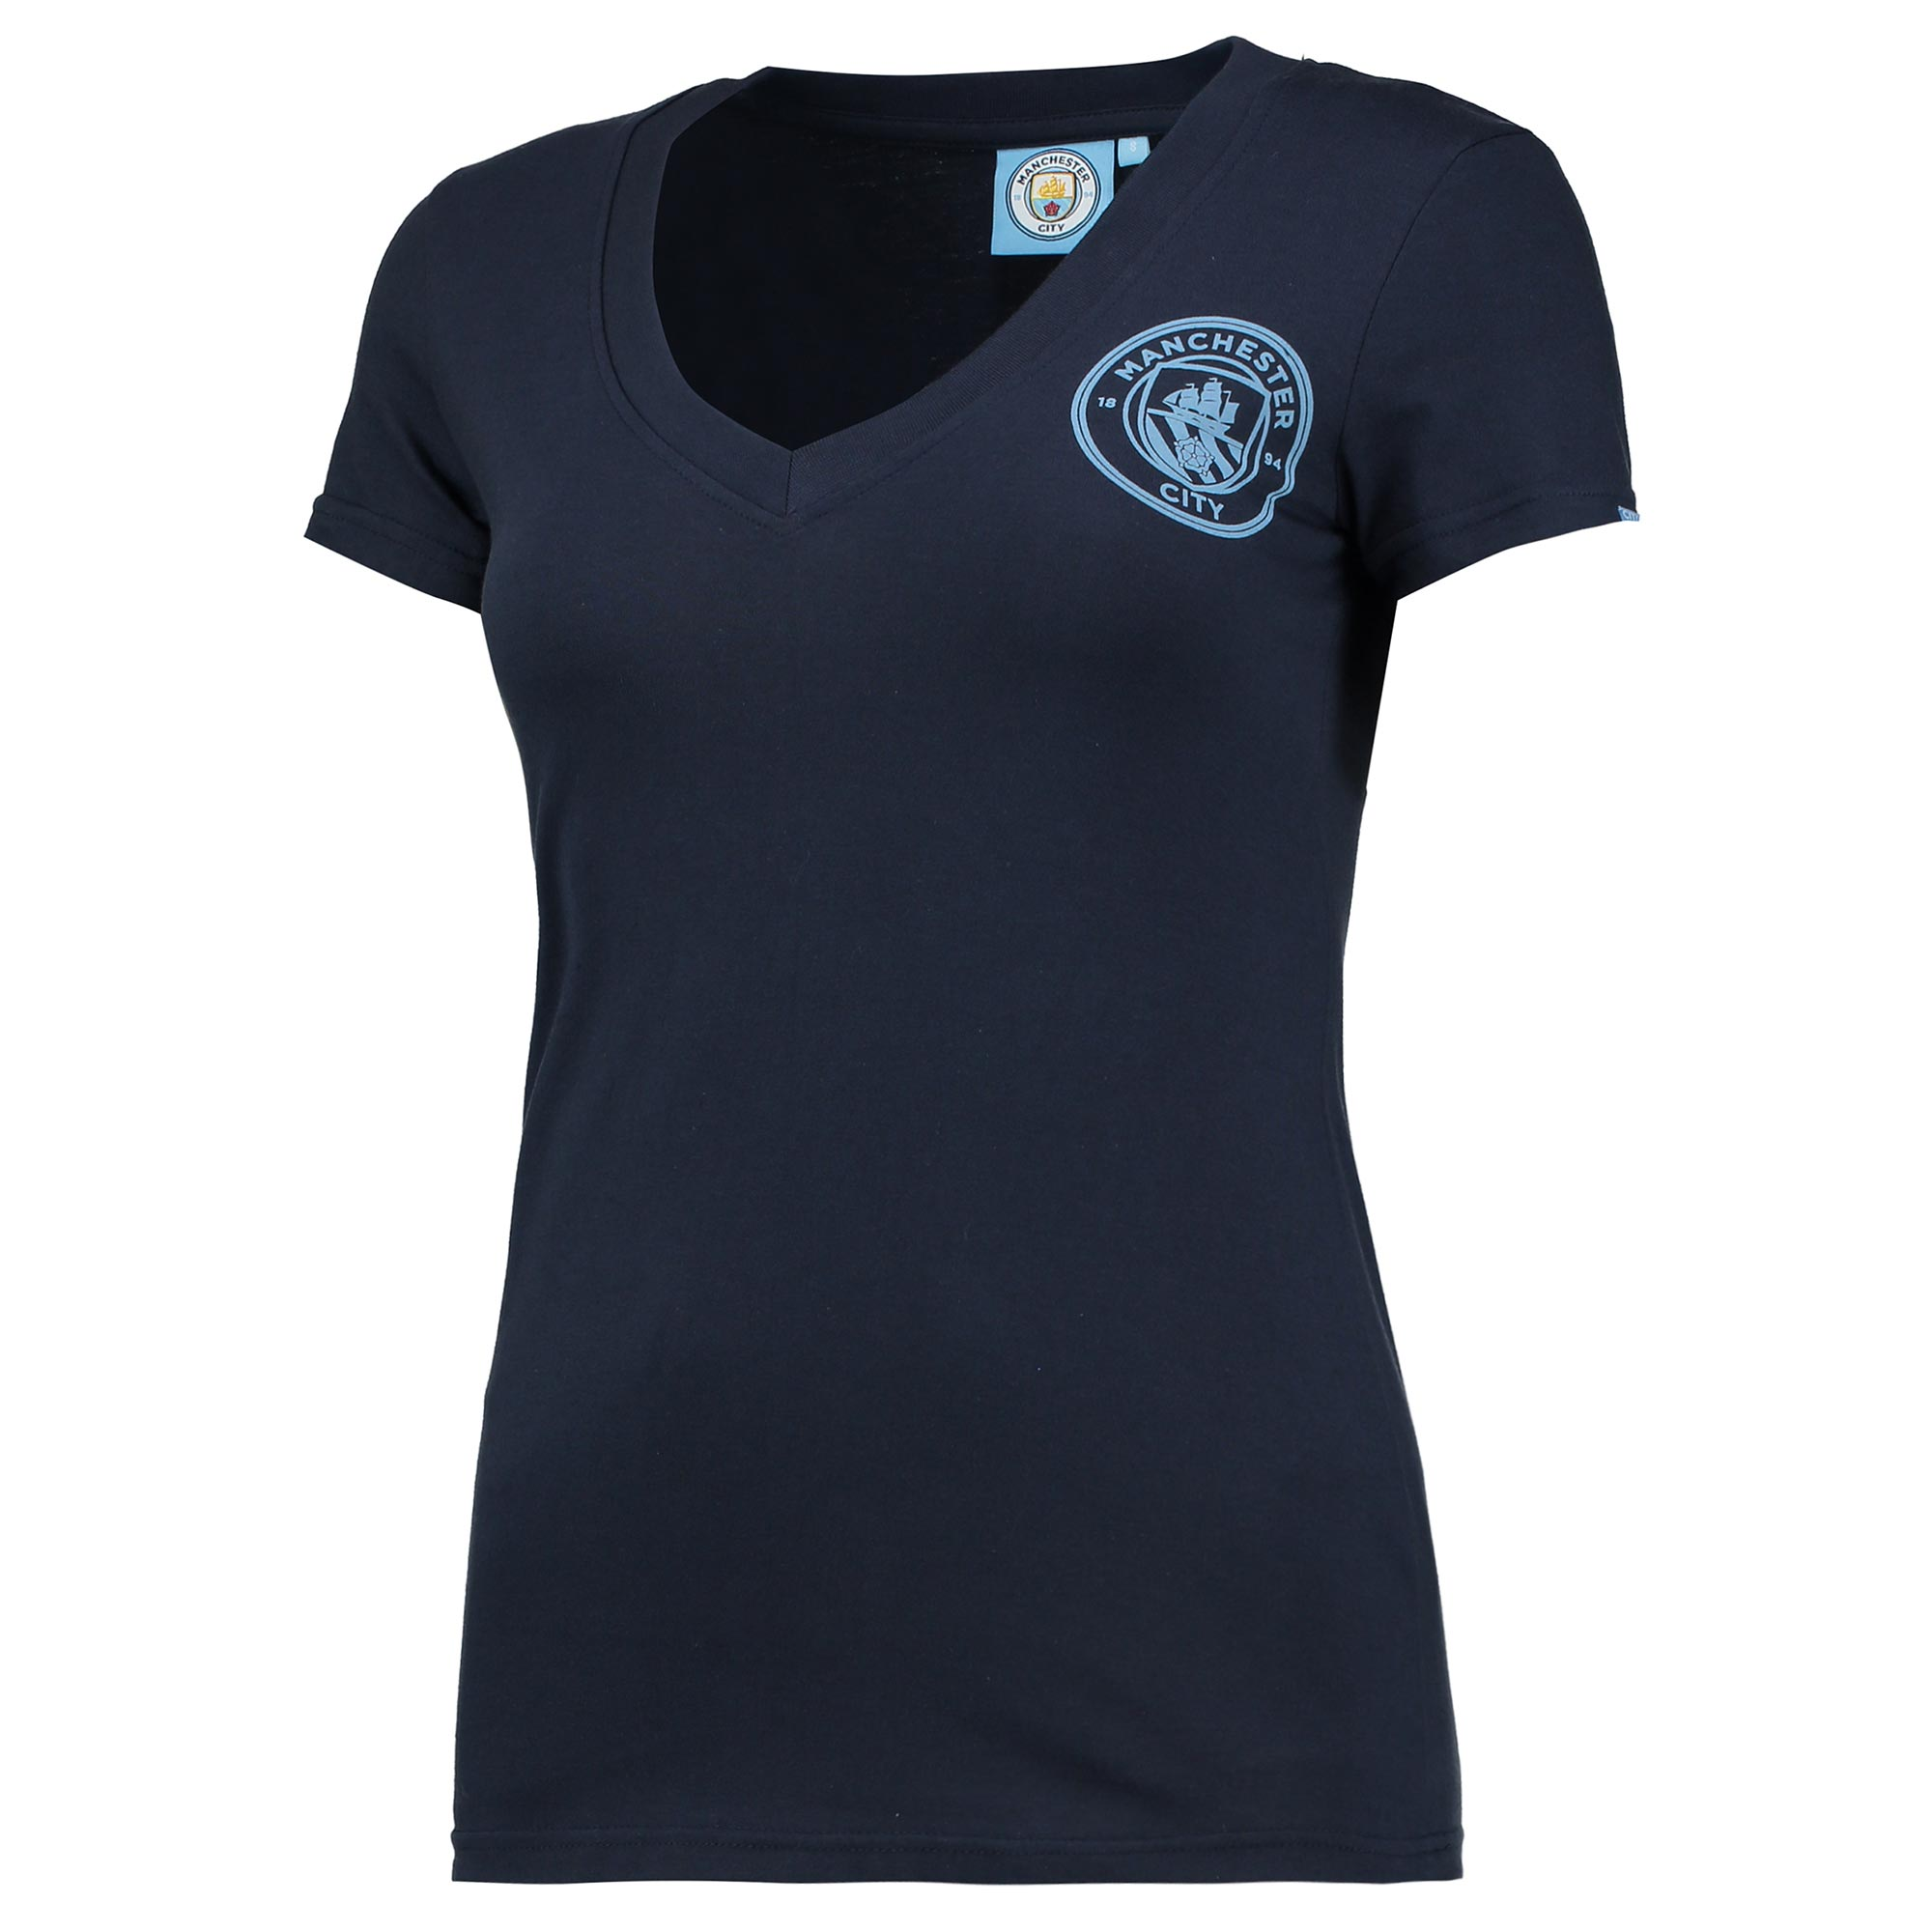 Manchester City Printed Crest V-Neck T-Shirt - Navy - Womens